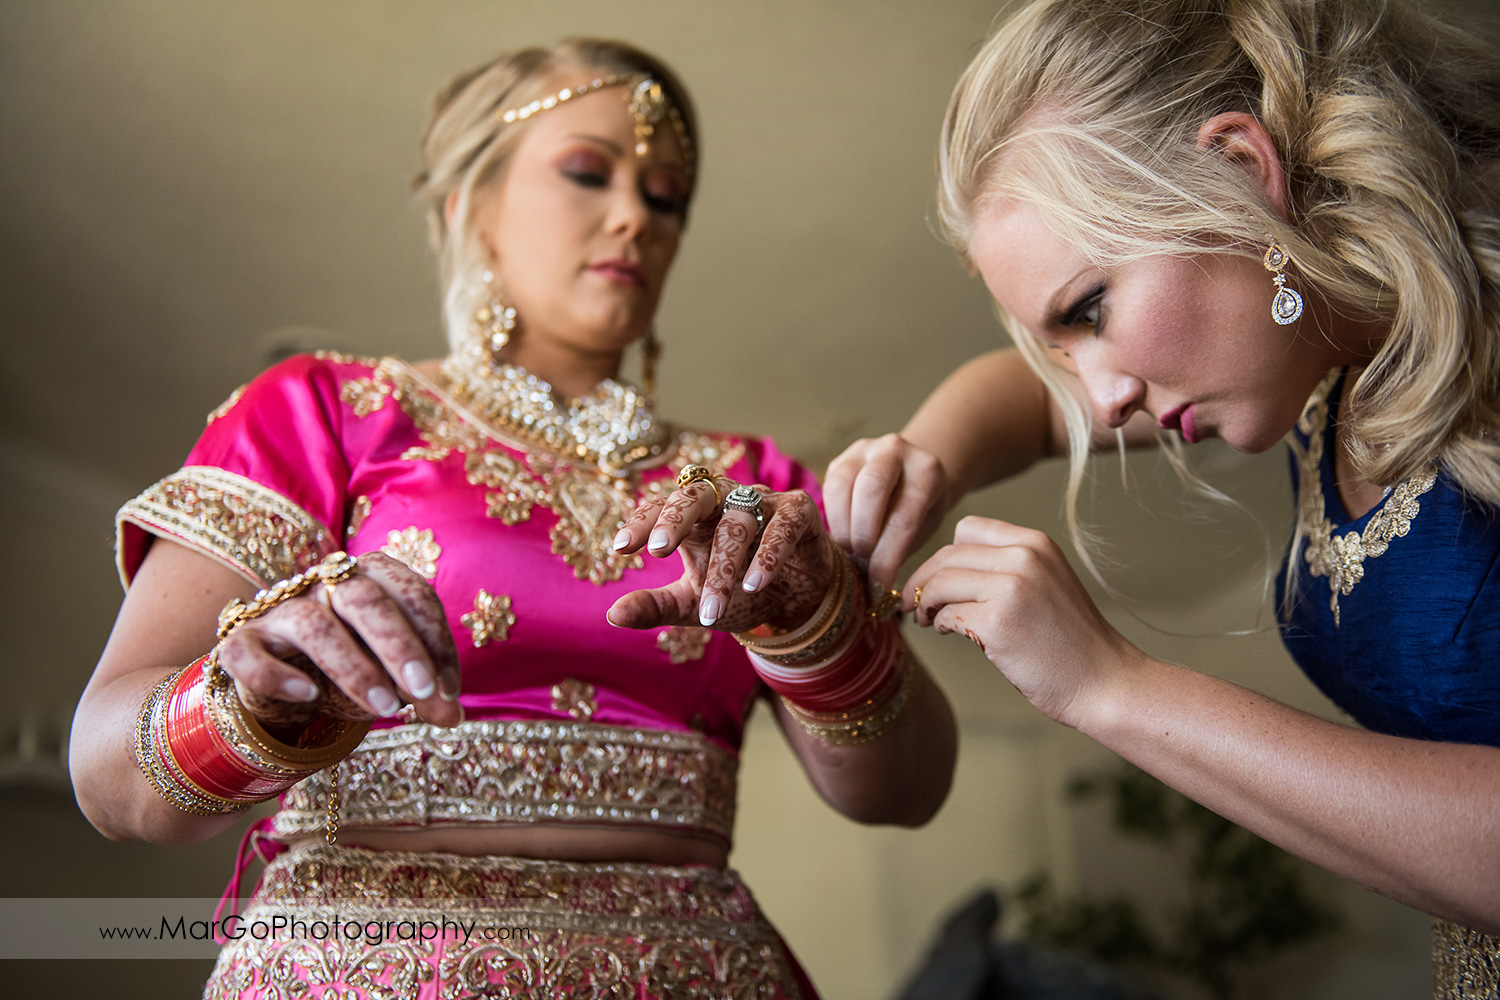 Indian bride preparation - putting on golden hand jewelry